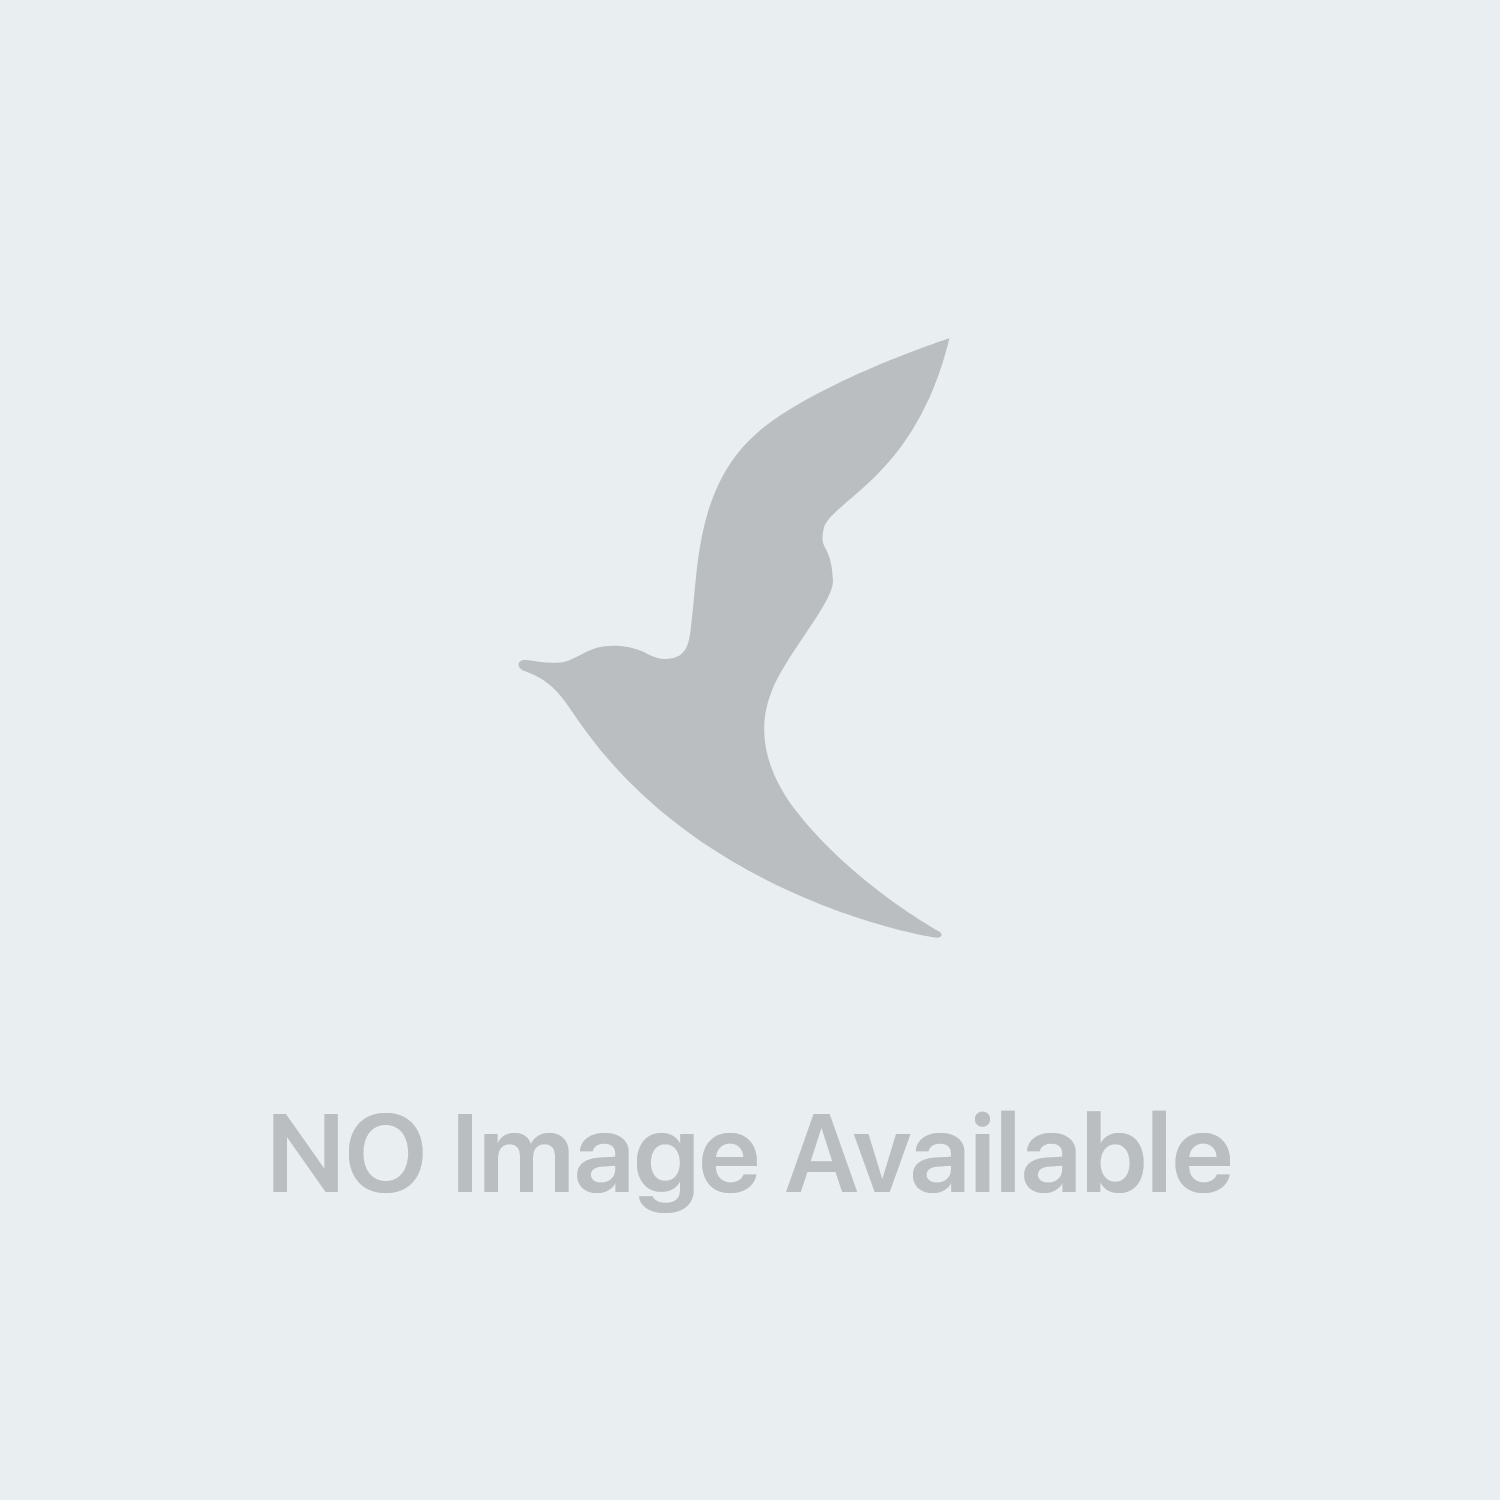 Moment 6 Compresse Rivestite 200 mg